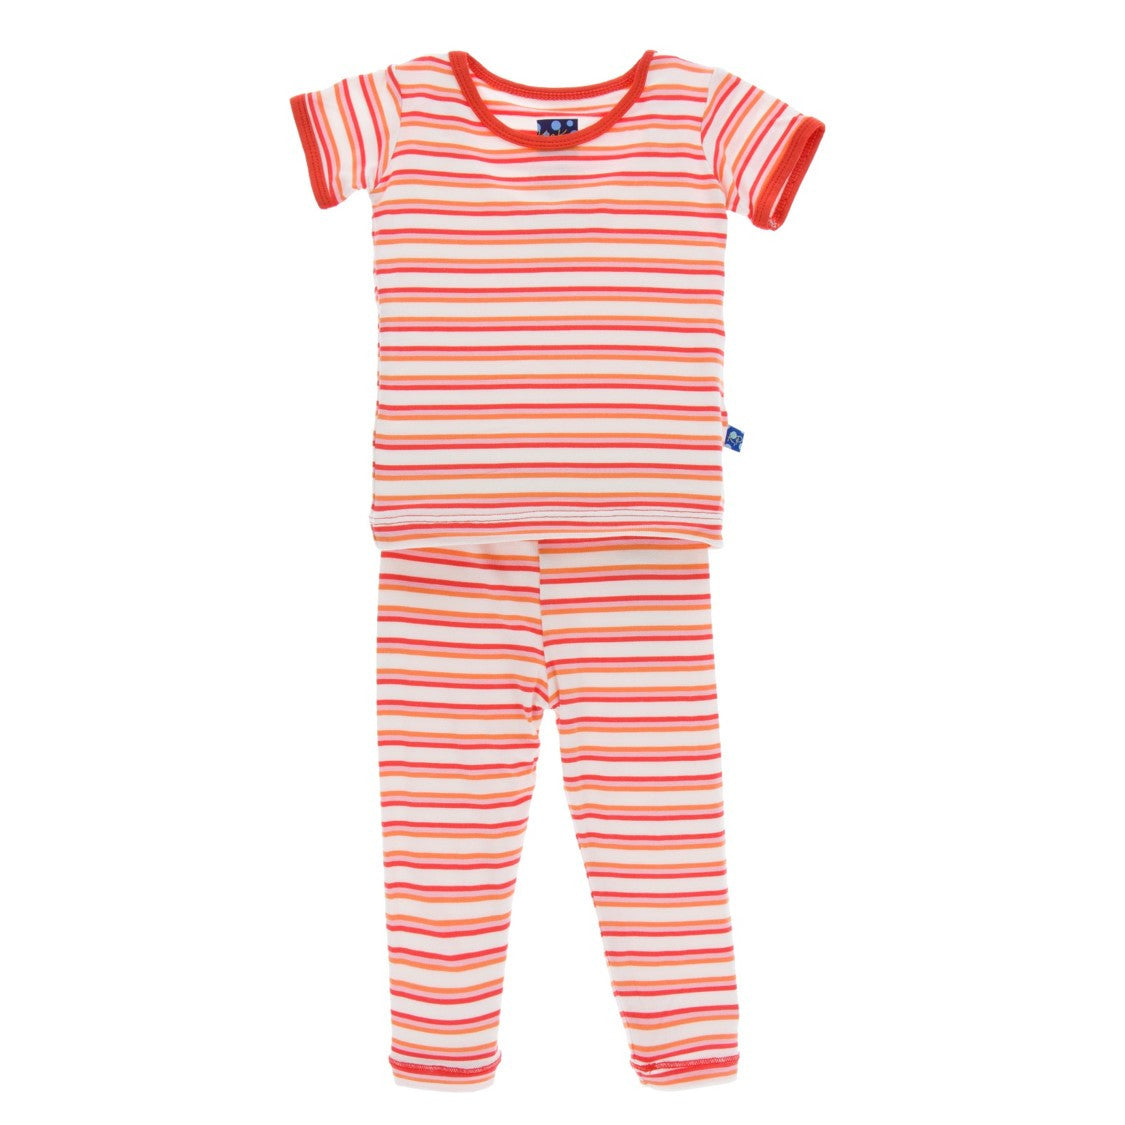 Kickee Pants - Spring 3 2017 - Girl Fresh Water Stripe Pajama Set